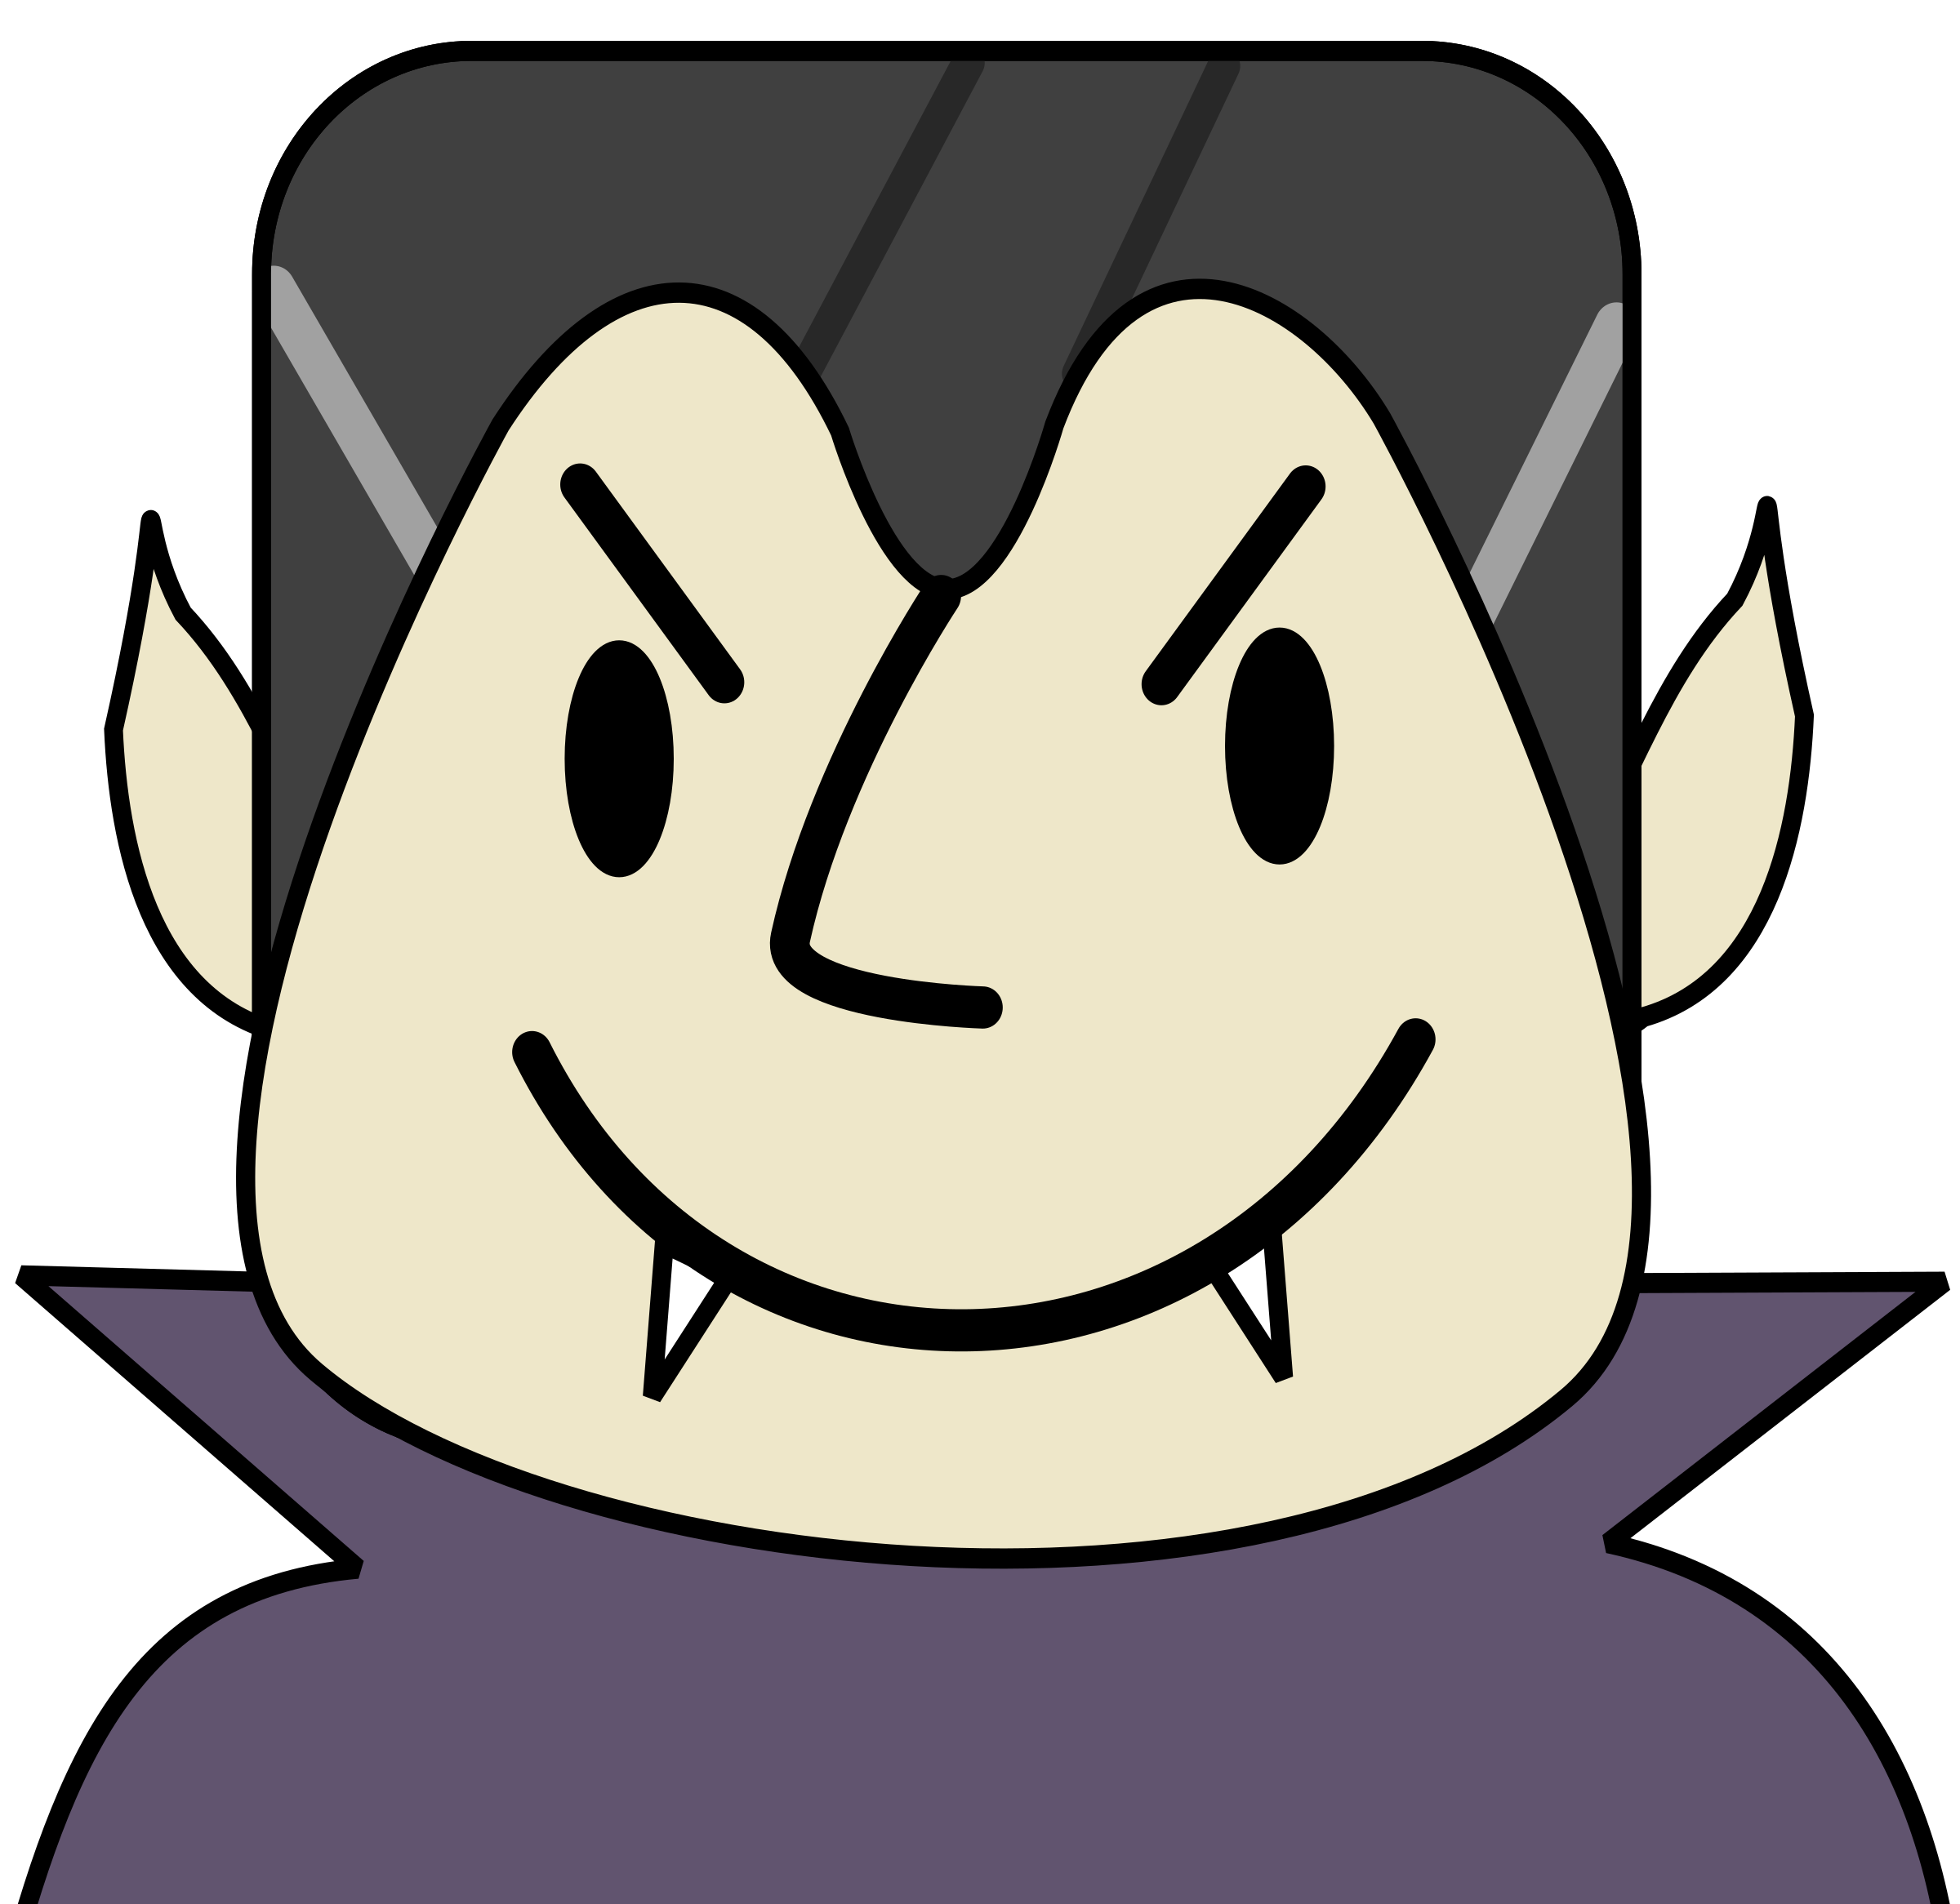 Vampire clipart vampire face. Guy big image png